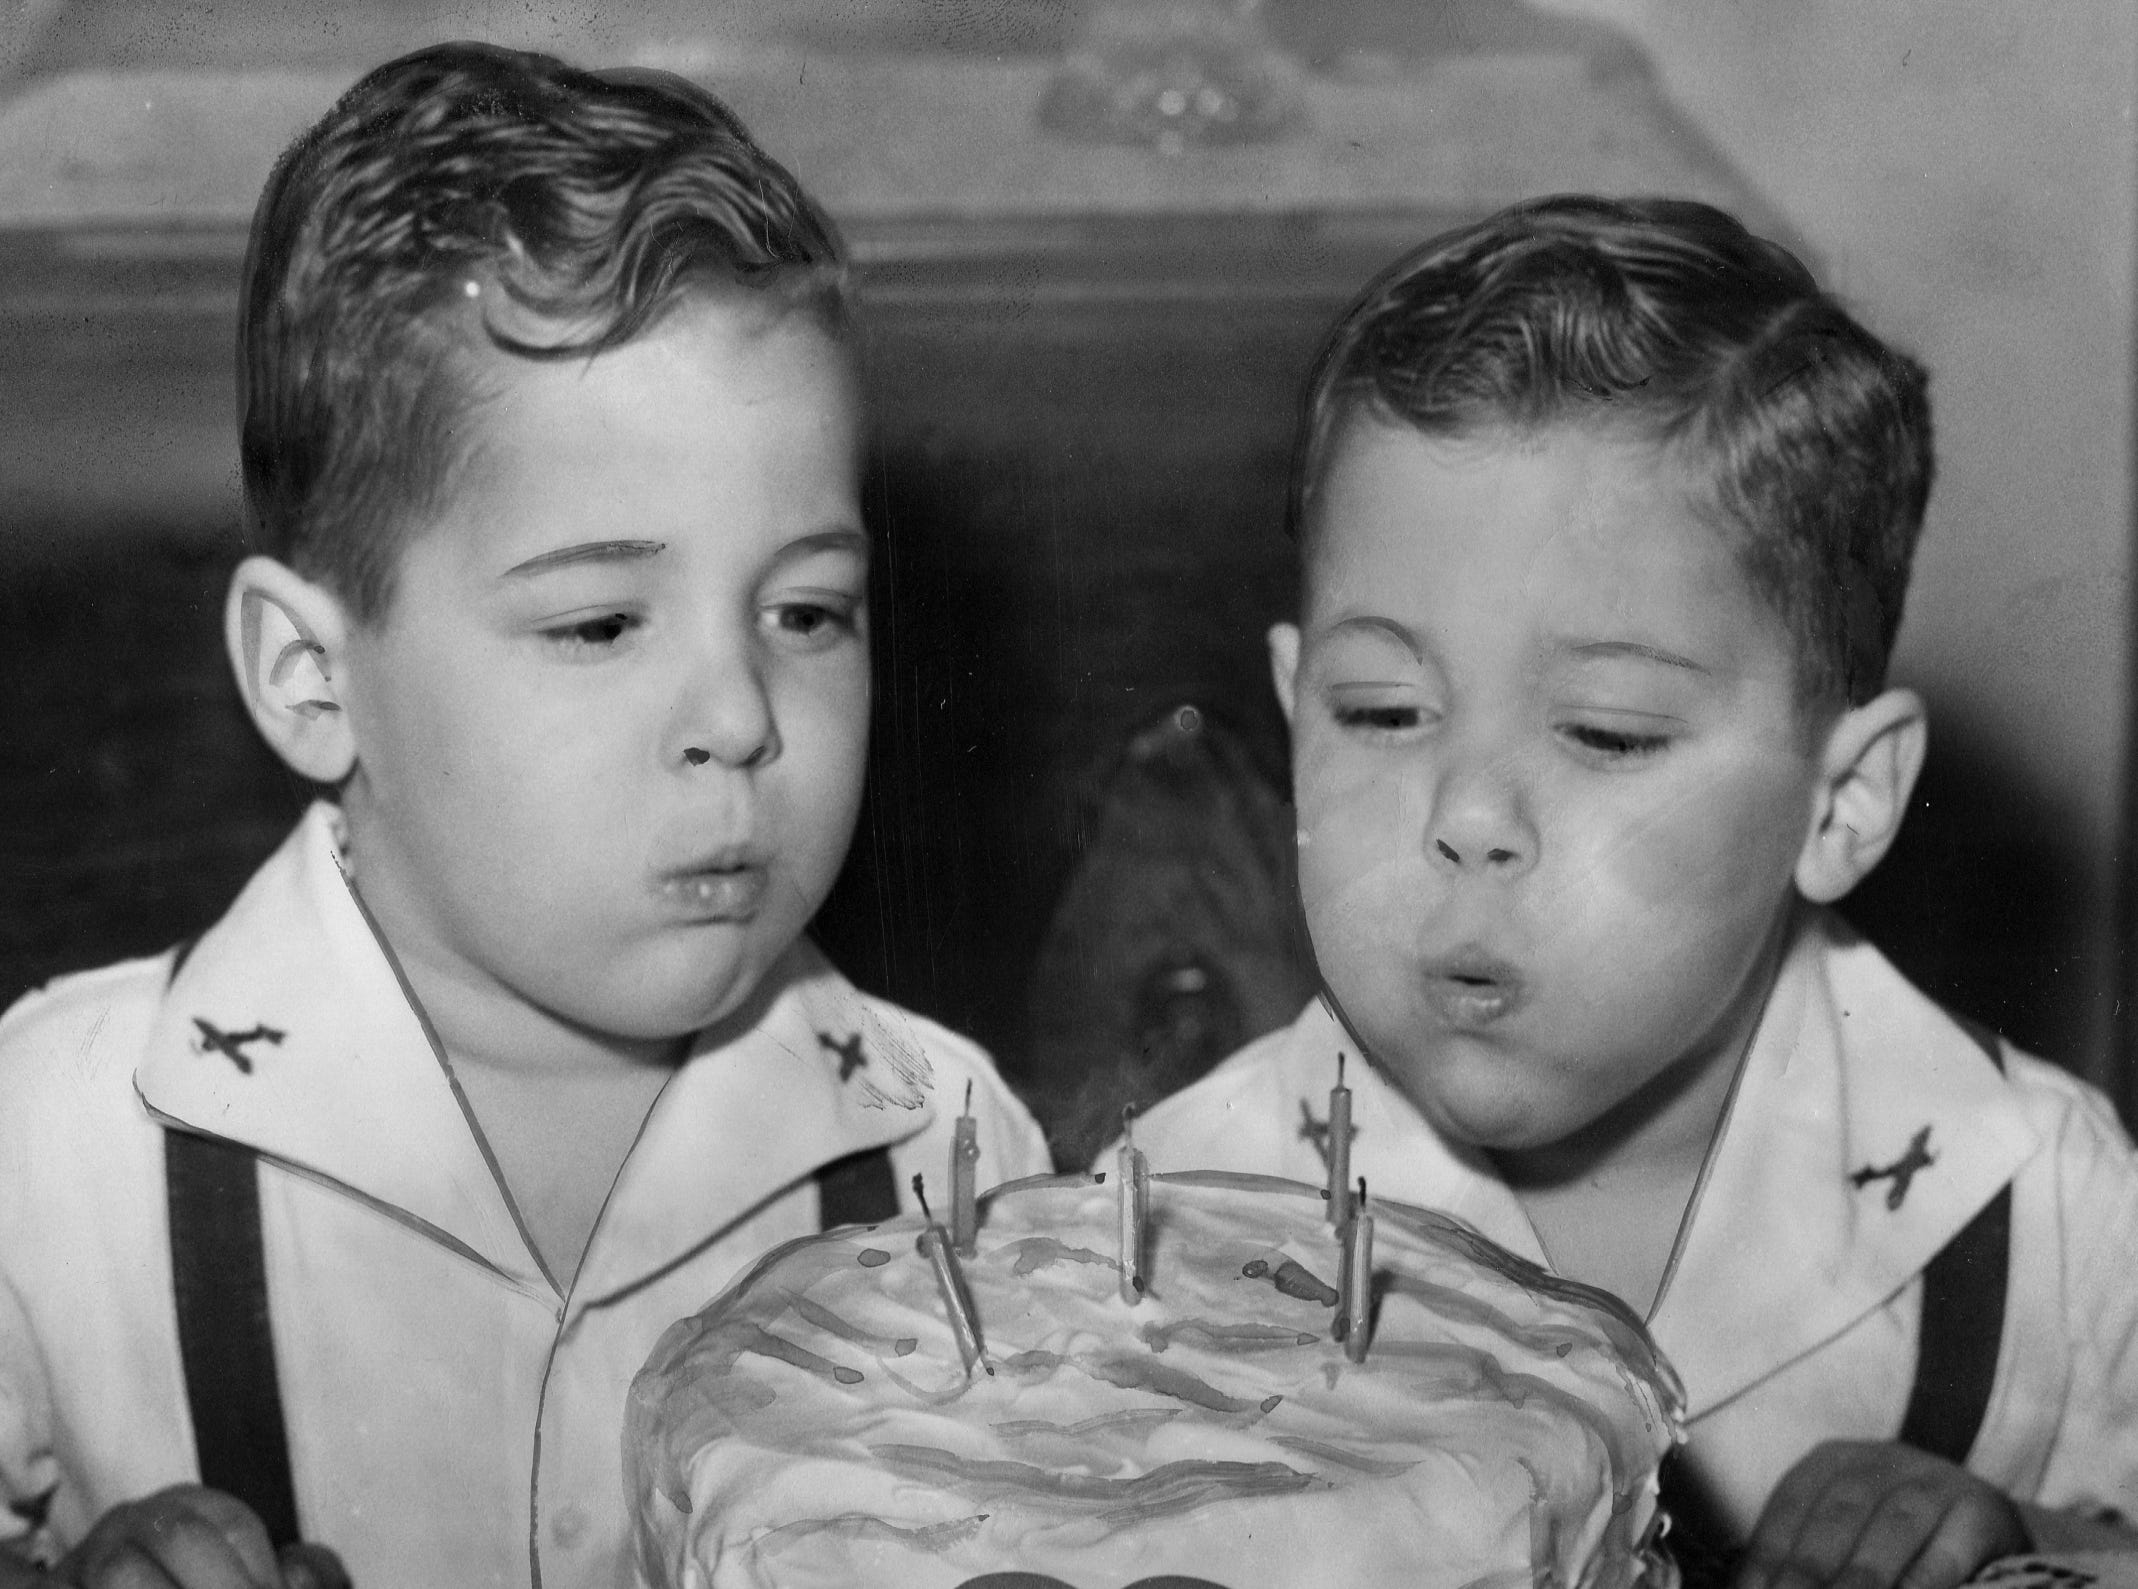 Twins Robert and Richard Benoit celebrate their fifth birthdays on Feb. 11, 1944 in Detroit.